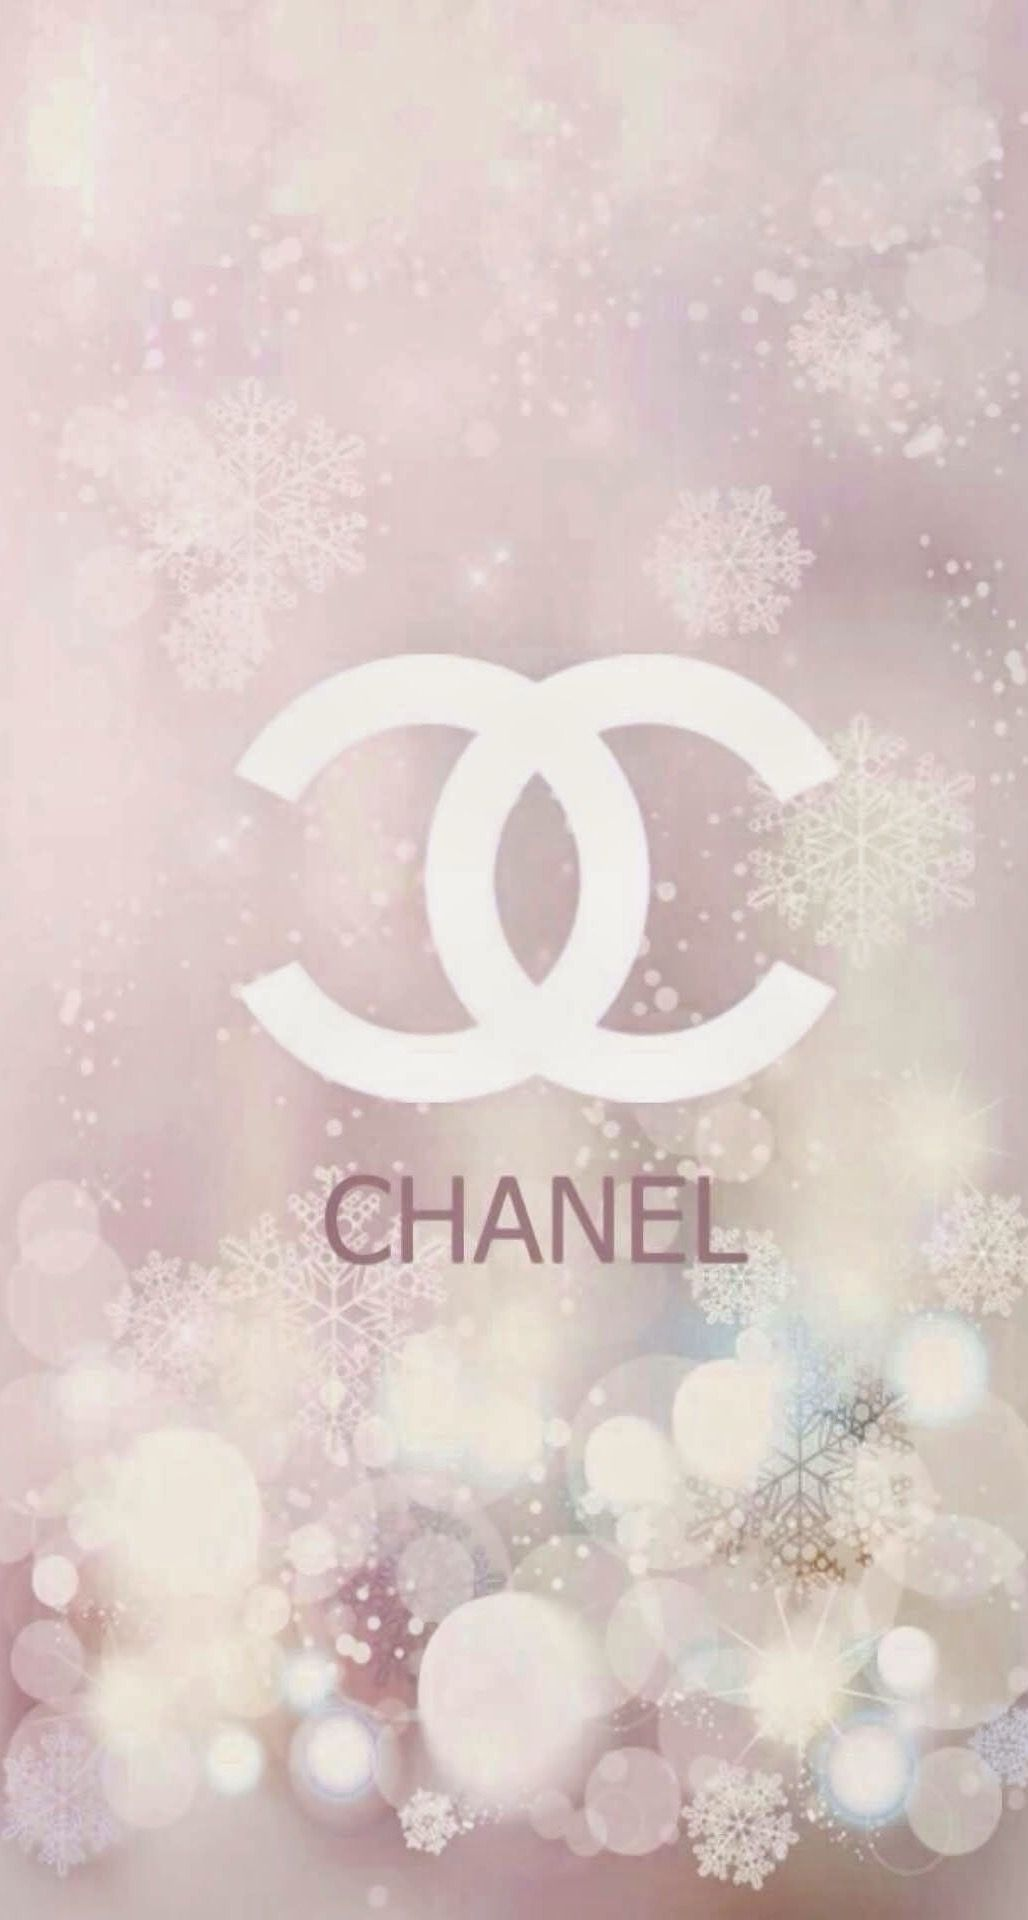 Winter Iphone Wallpaper Wallpapers Backgrounds Classy Gucci Chanel